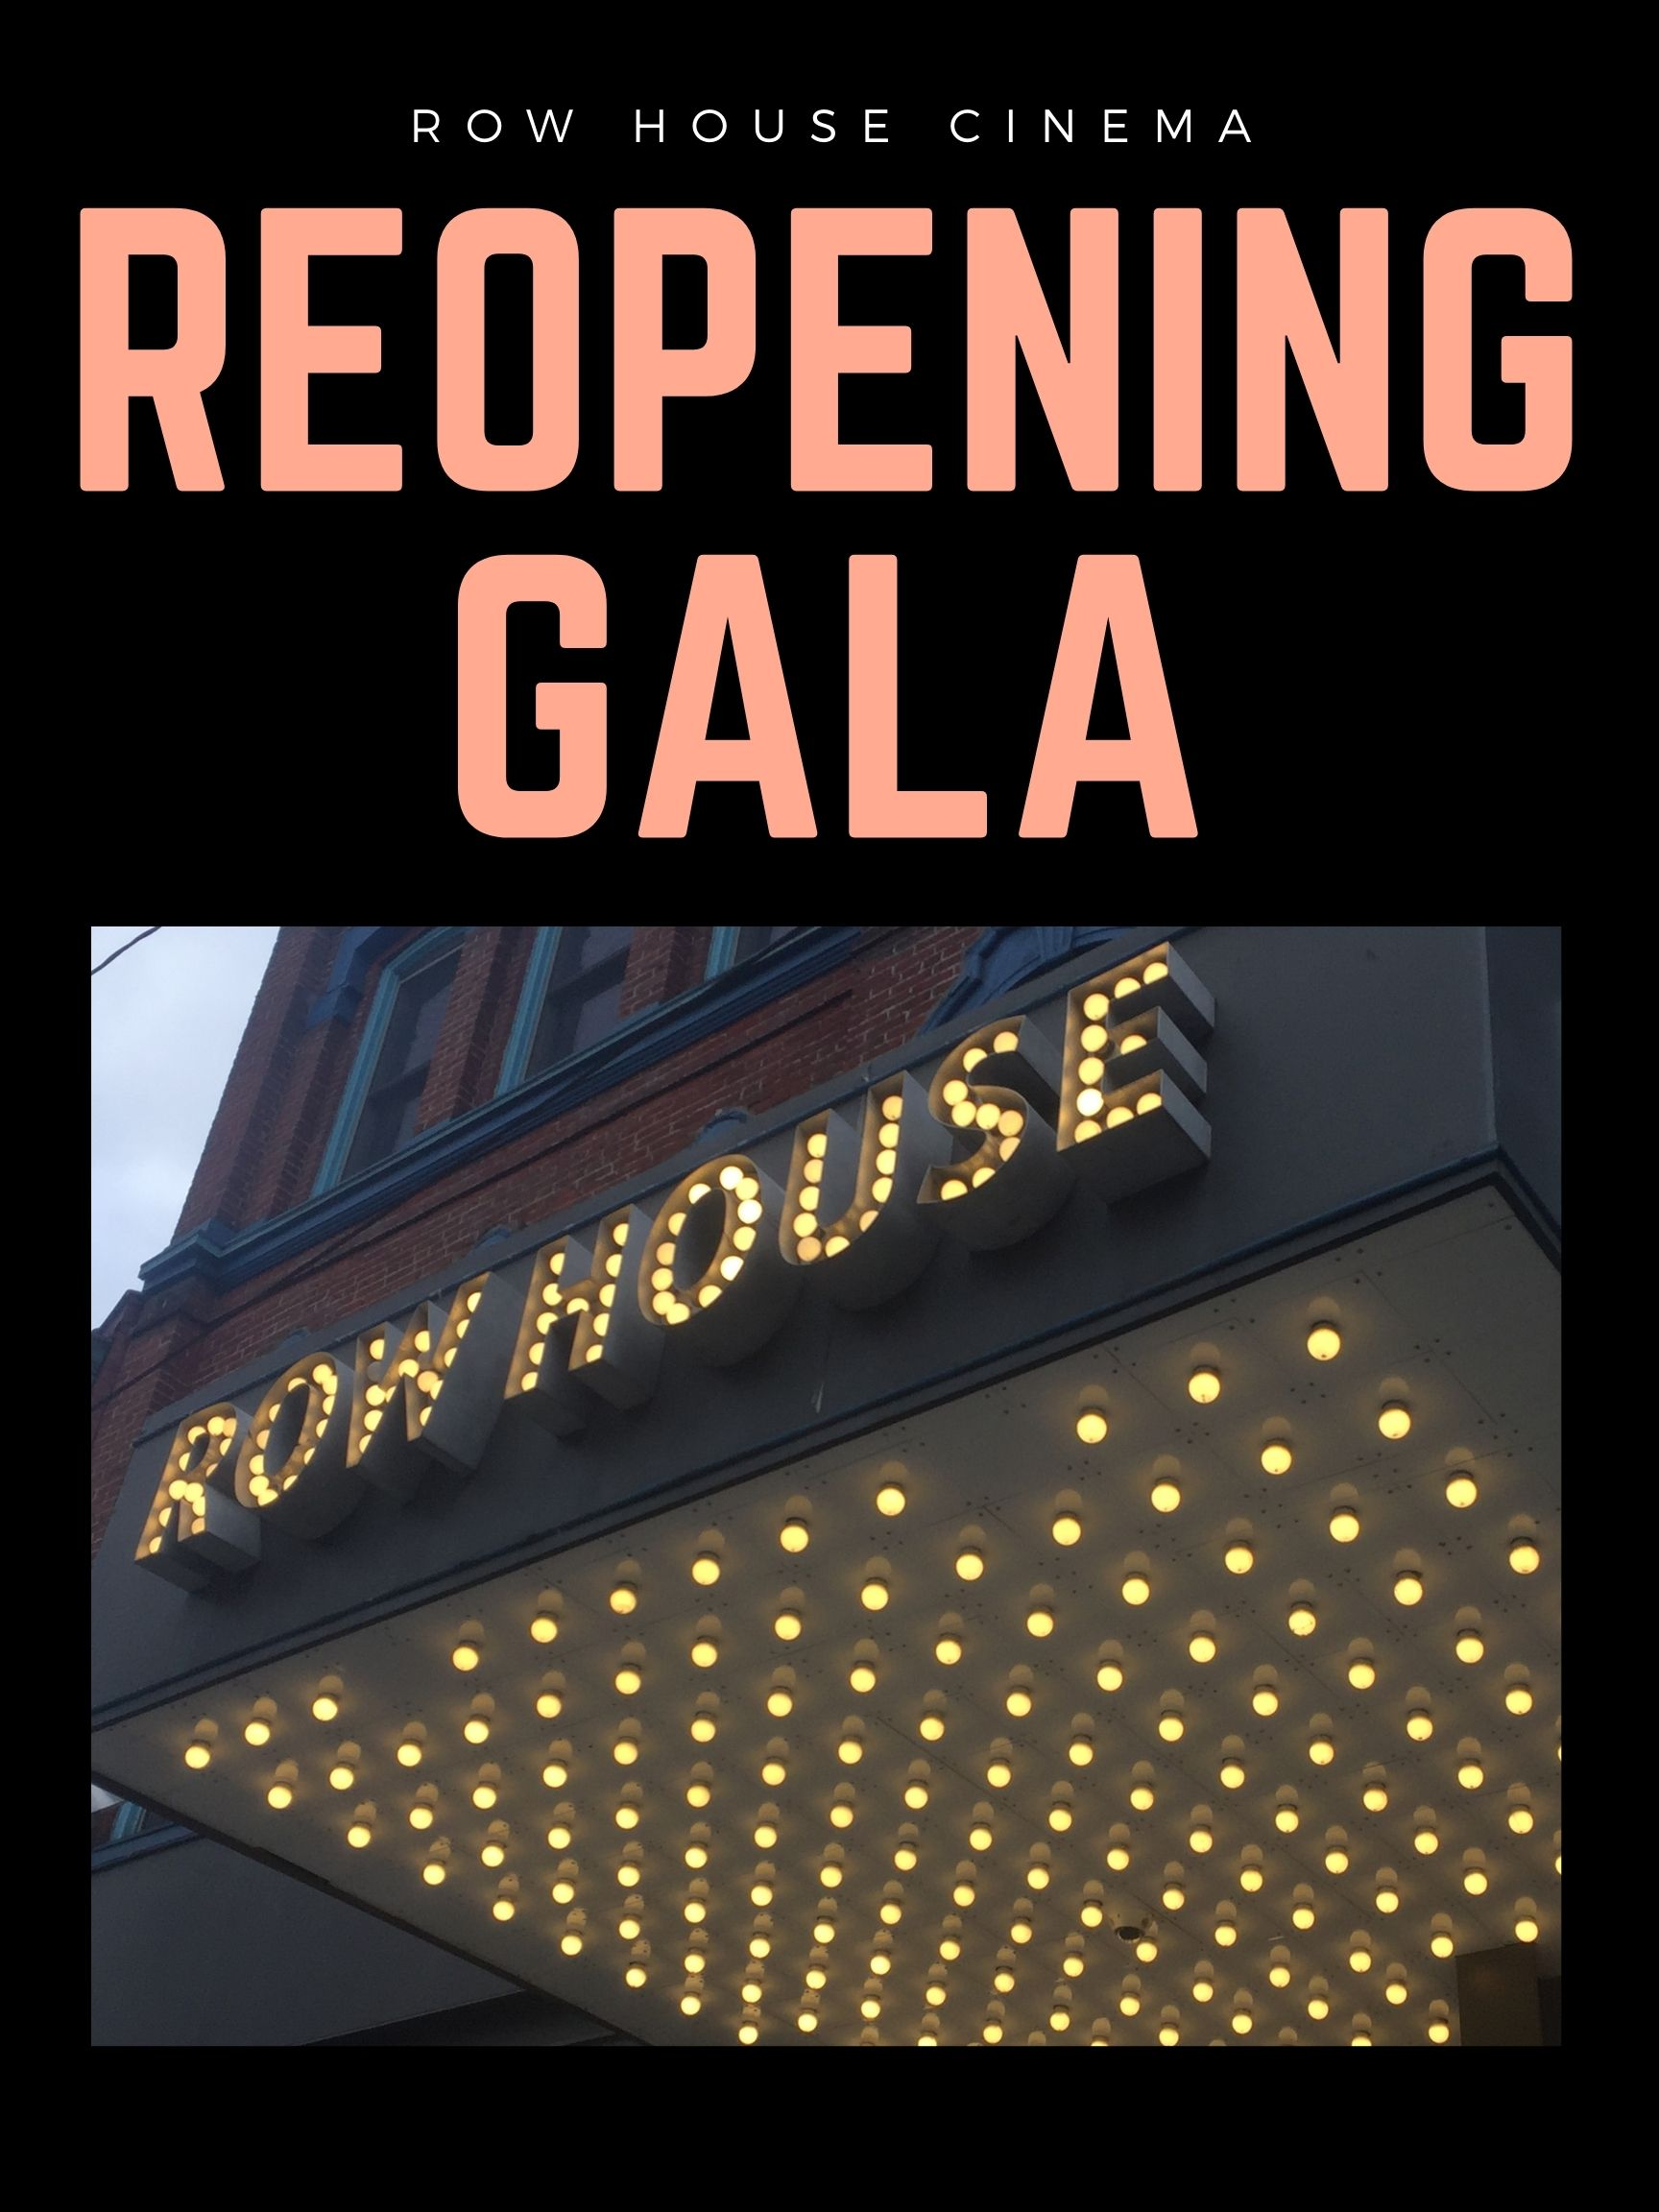 Poster for Red Carpet Reopening Gala w Pulp Fiction